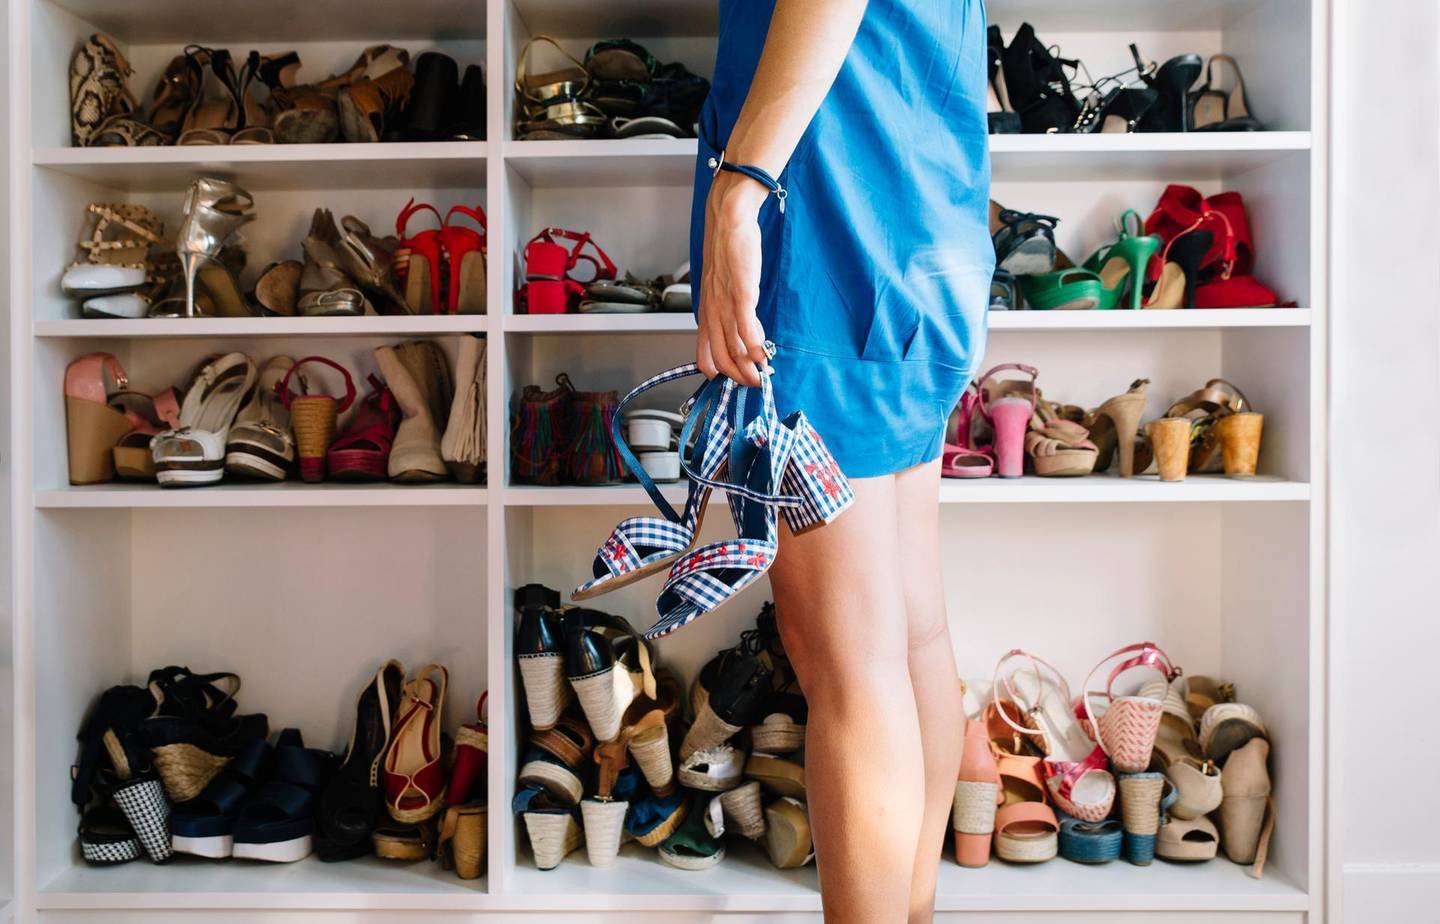 Woman with the shoes in the hand and Woman's shoes in the rack. Getty Images